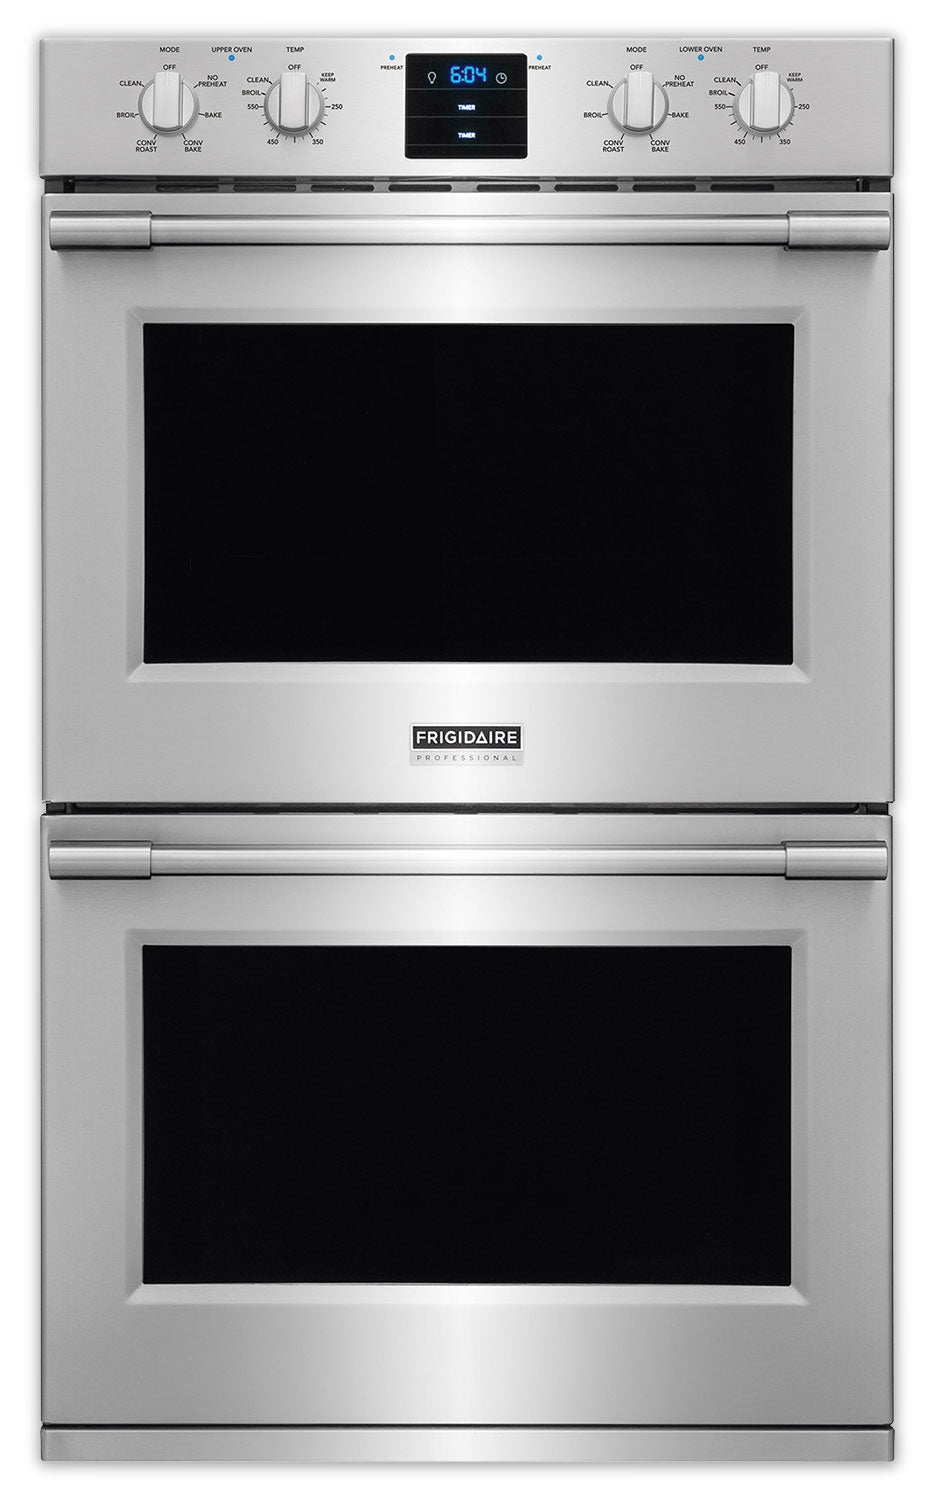 Frigidaire Professional Stainless Steel Convection Double